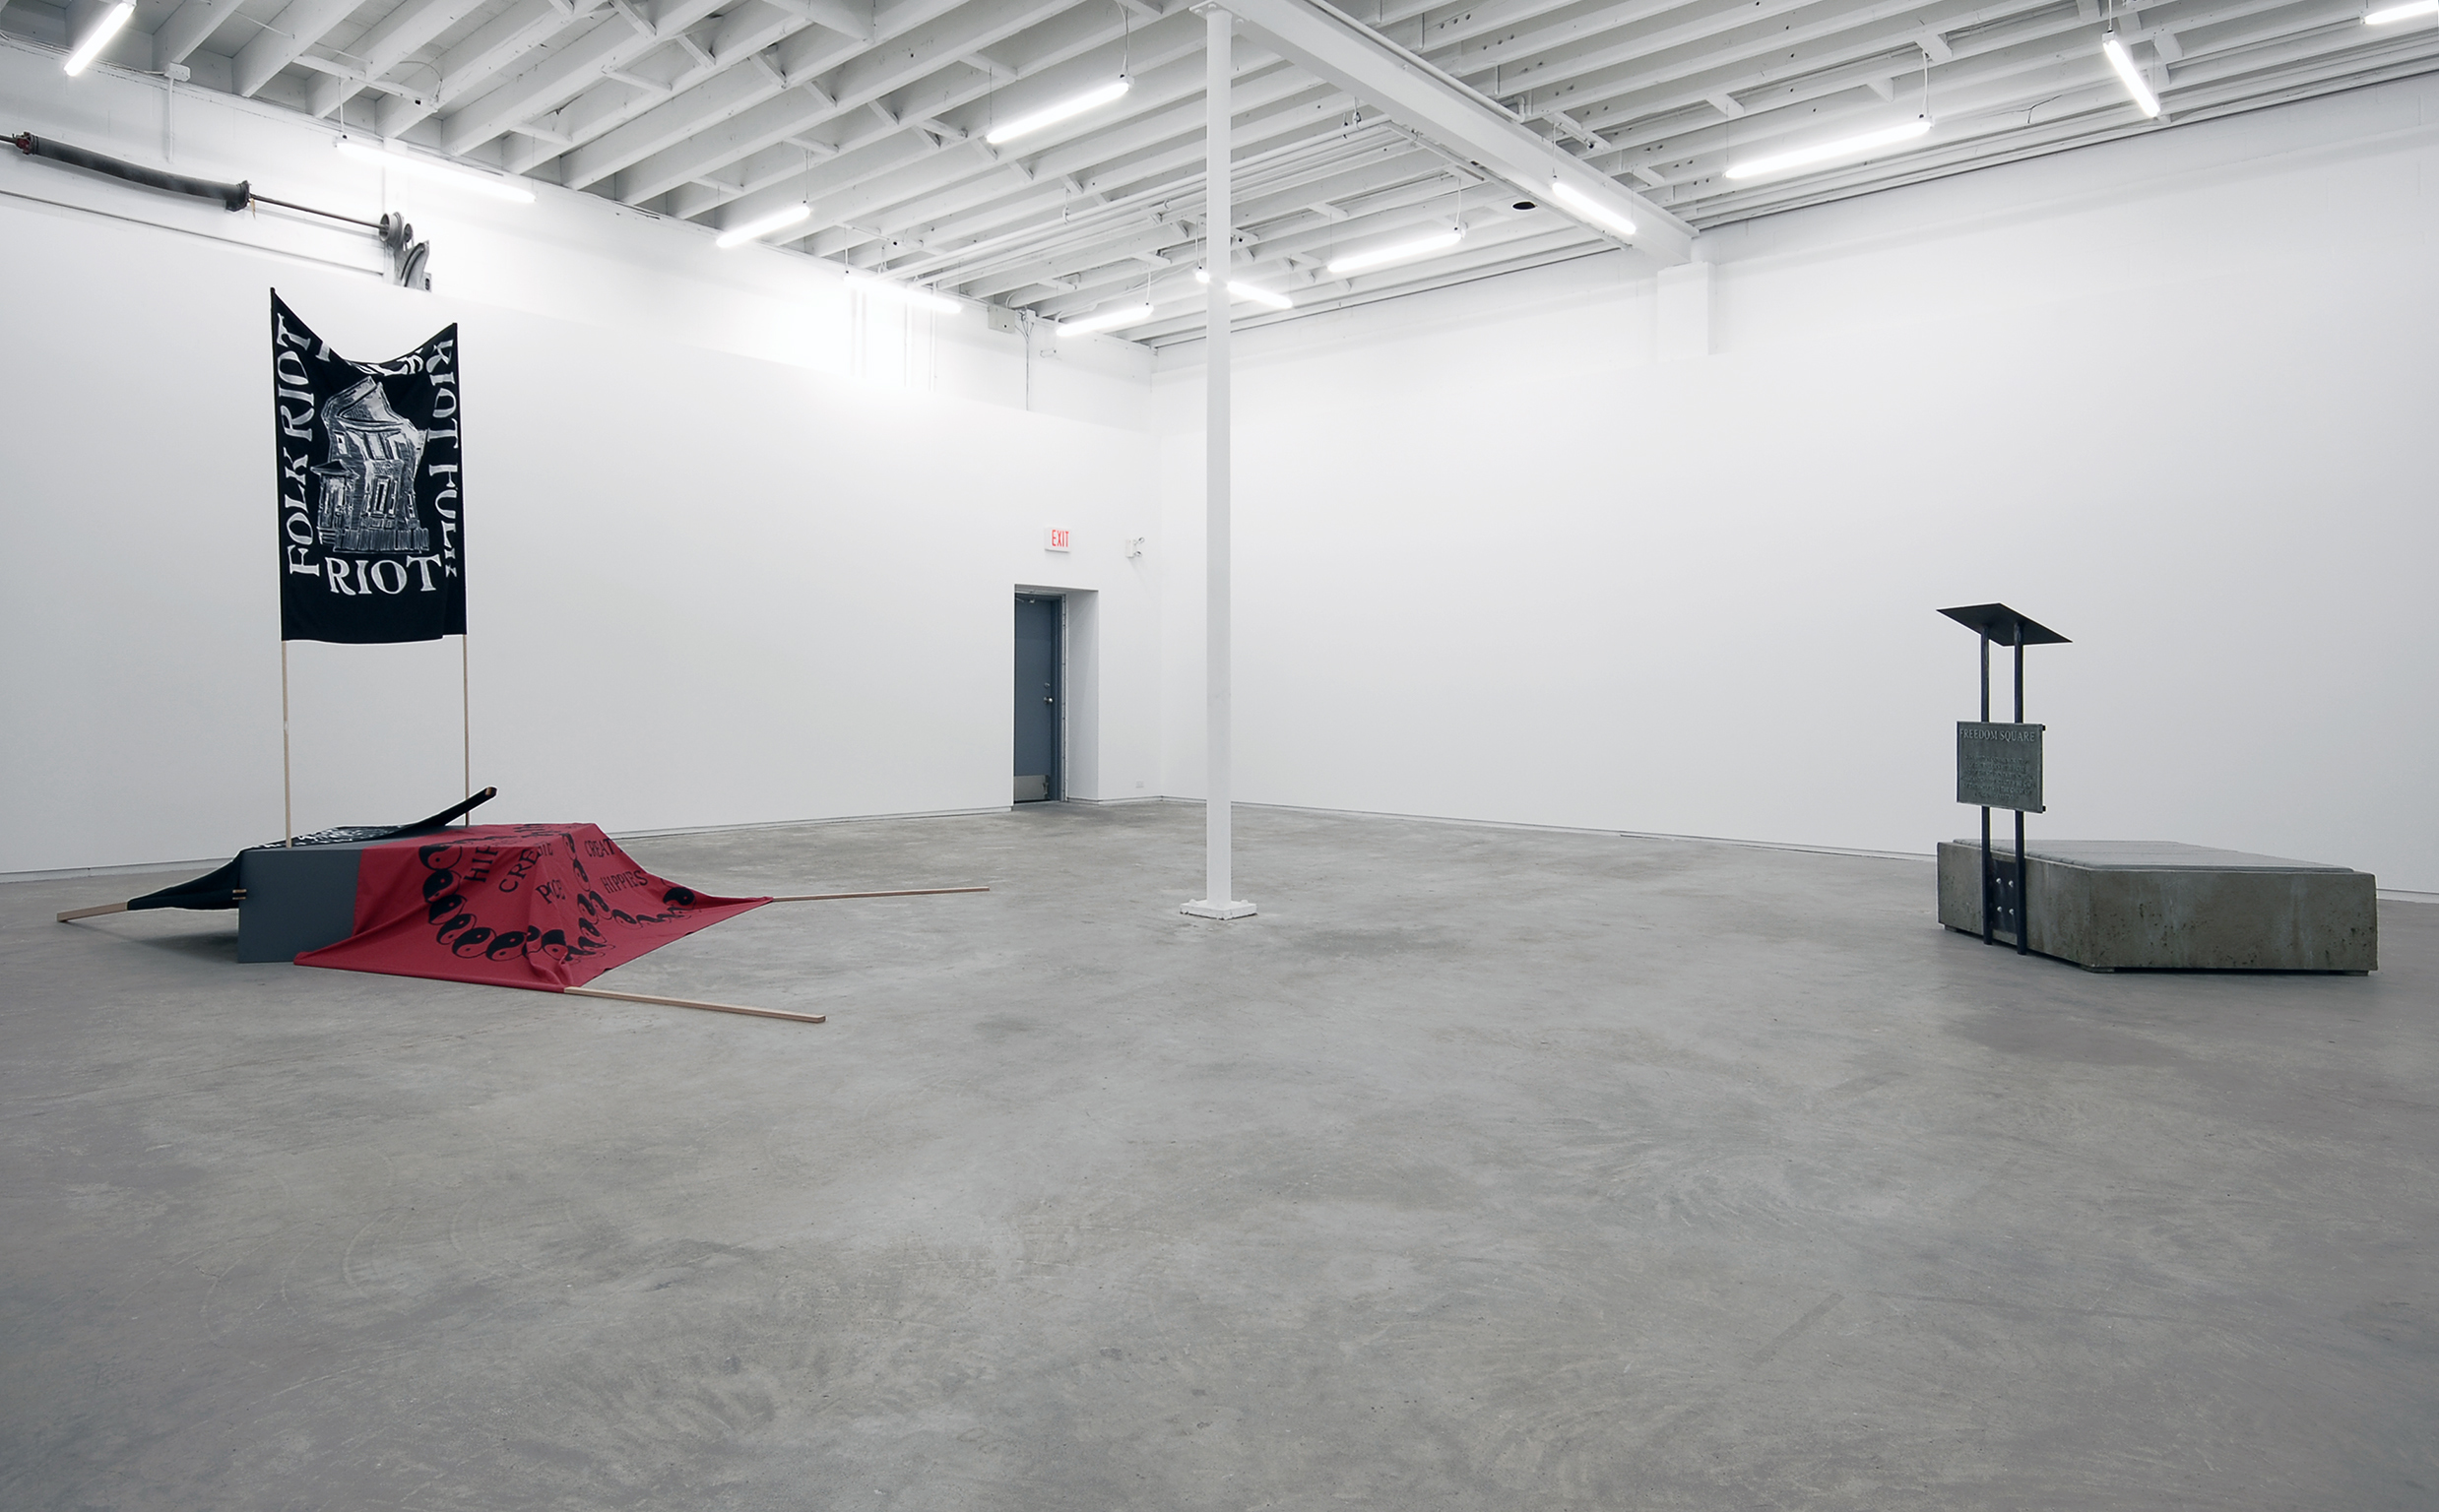 Alex Morrison, installation view, Catriona Jeffries, 2007 by